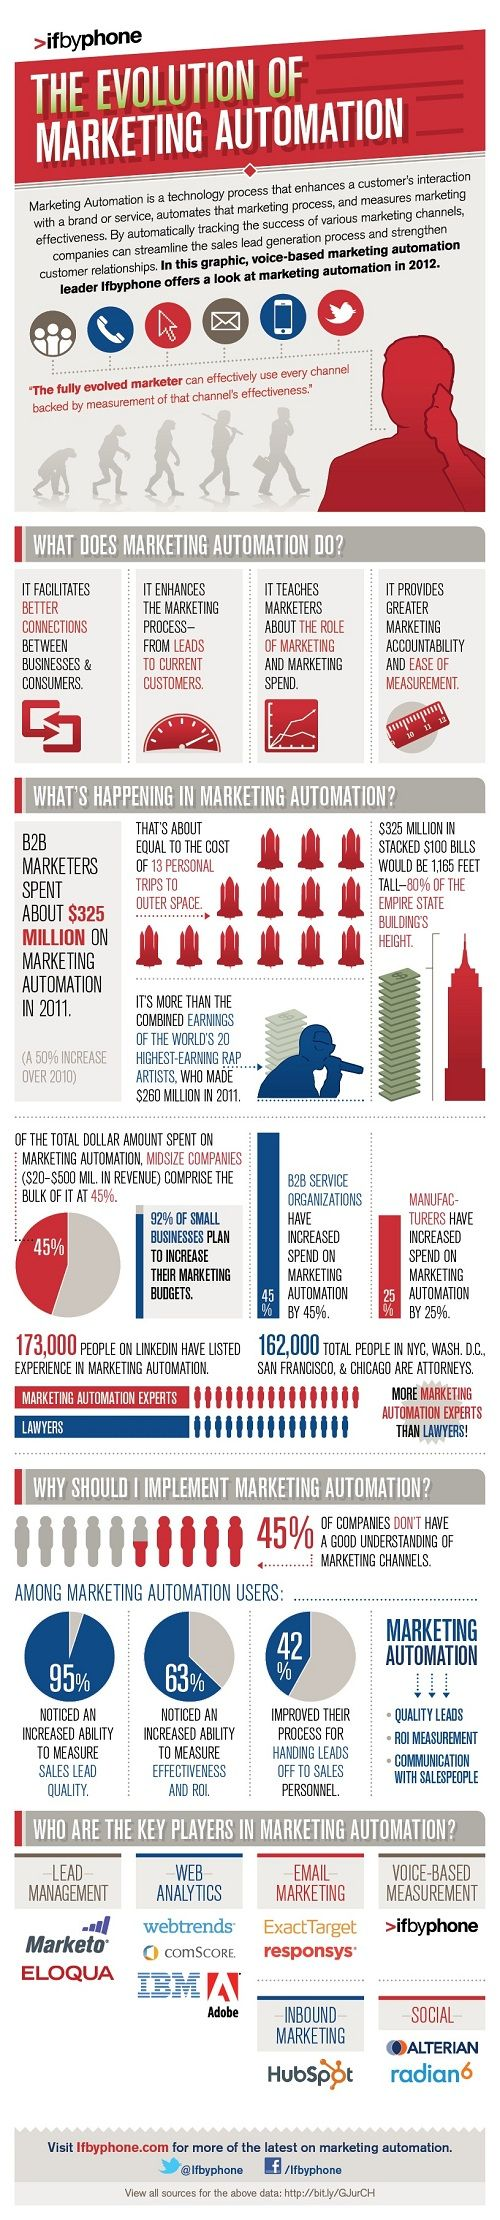 In this infographic, voice-based marketing automation leader Ifbyphone offers a look at marketing automation in 2012.